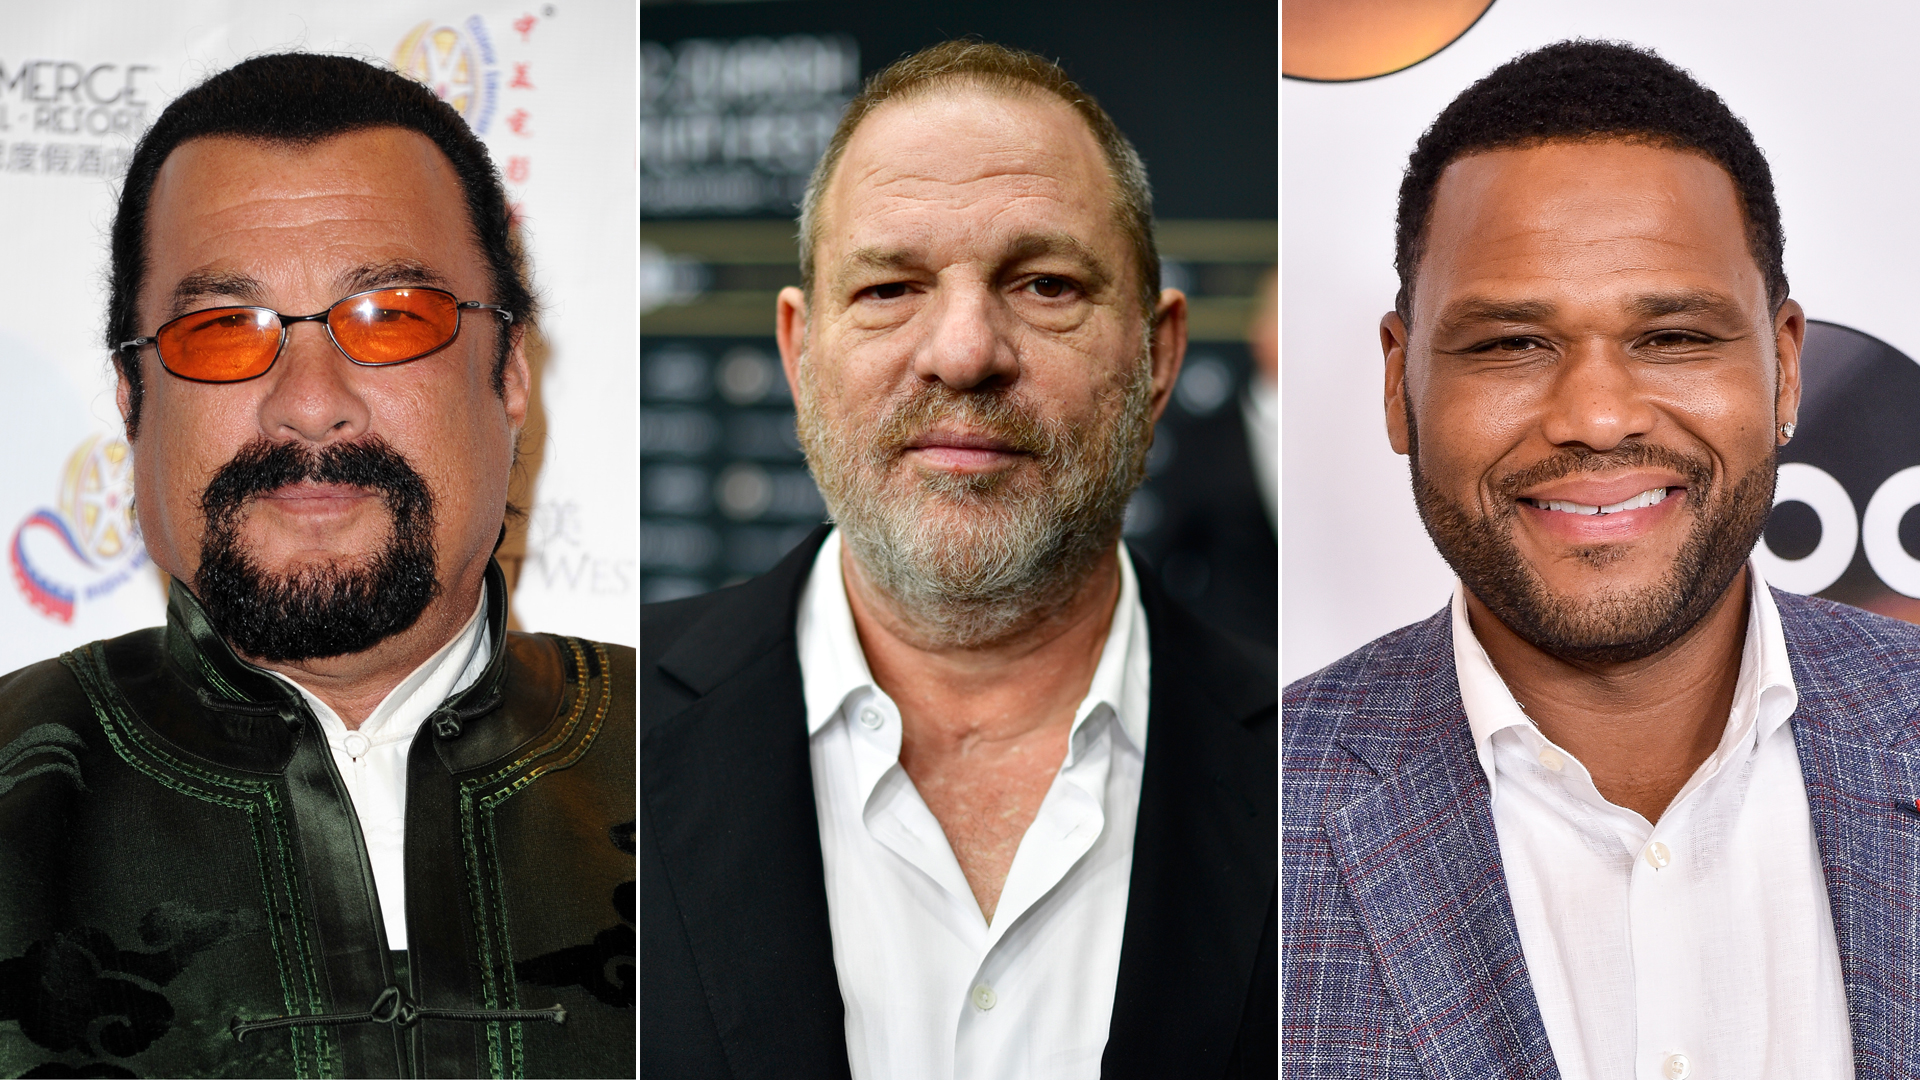 From left: Steven Seagal is seen at a film festival in Pasadena in 2014; Harvey Weinstein appears at a movie premiere in Zurich, Switzerland, in 2016; and Anthony Anderson is seen at an ABC press event in Beverly Hills in 2016. (Credit: Allen Berezovsky / Alexander Koerner / Mike Windle / Getty Images)